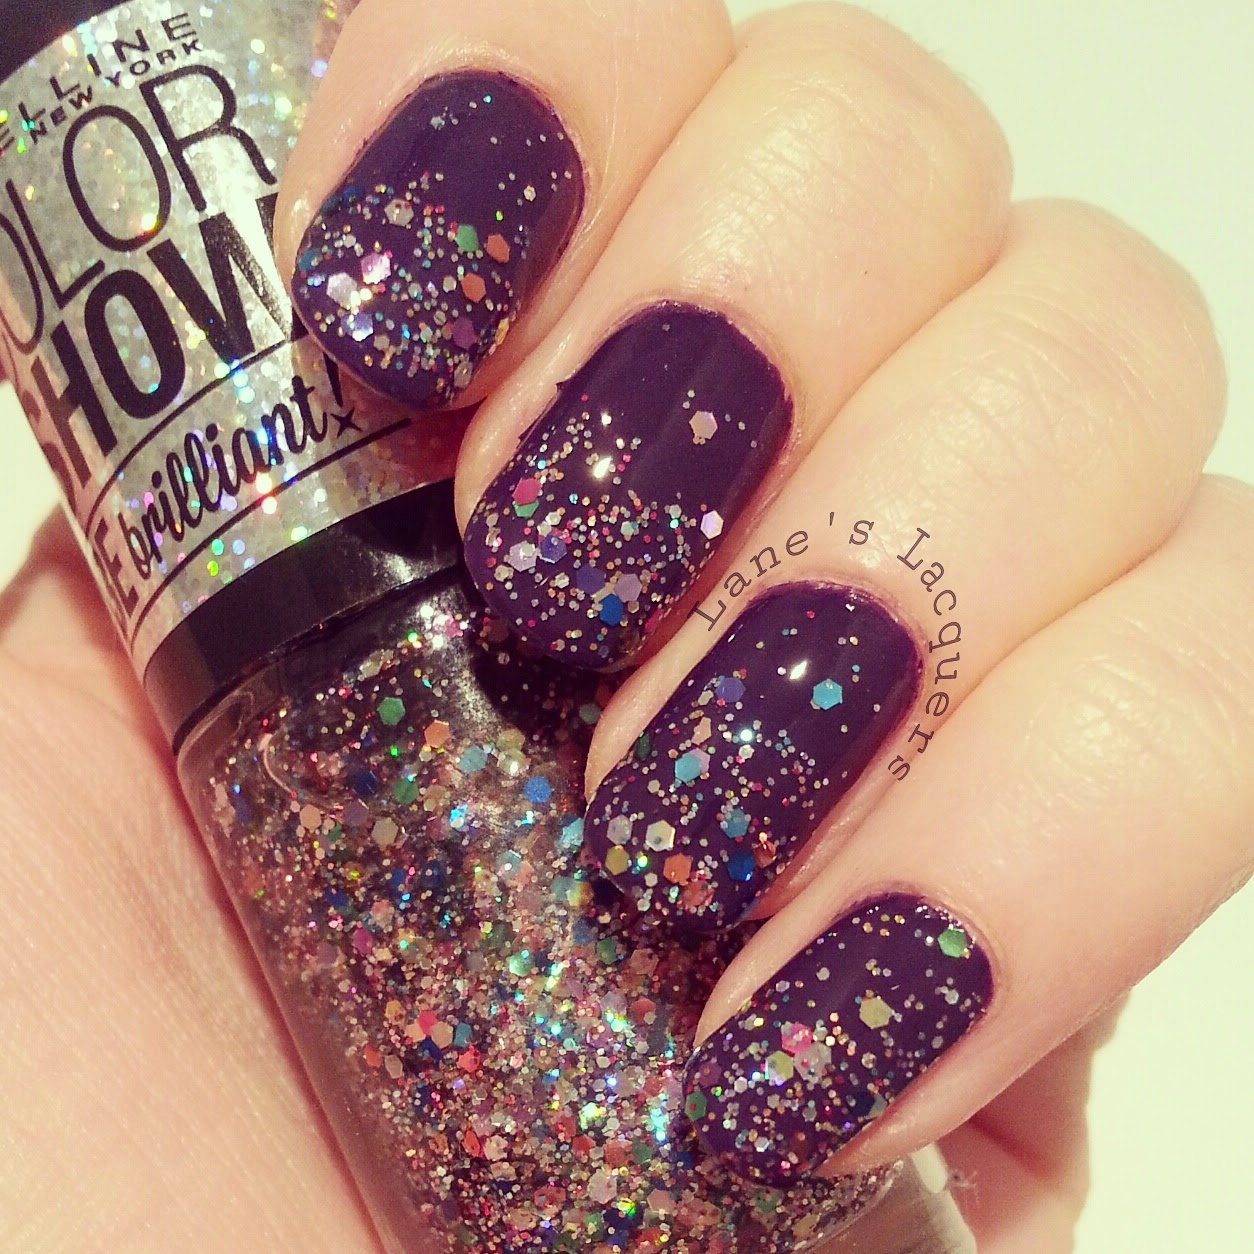 maybelline-colorshow-be-brilliant-light-it-up-swatch-nails (2)